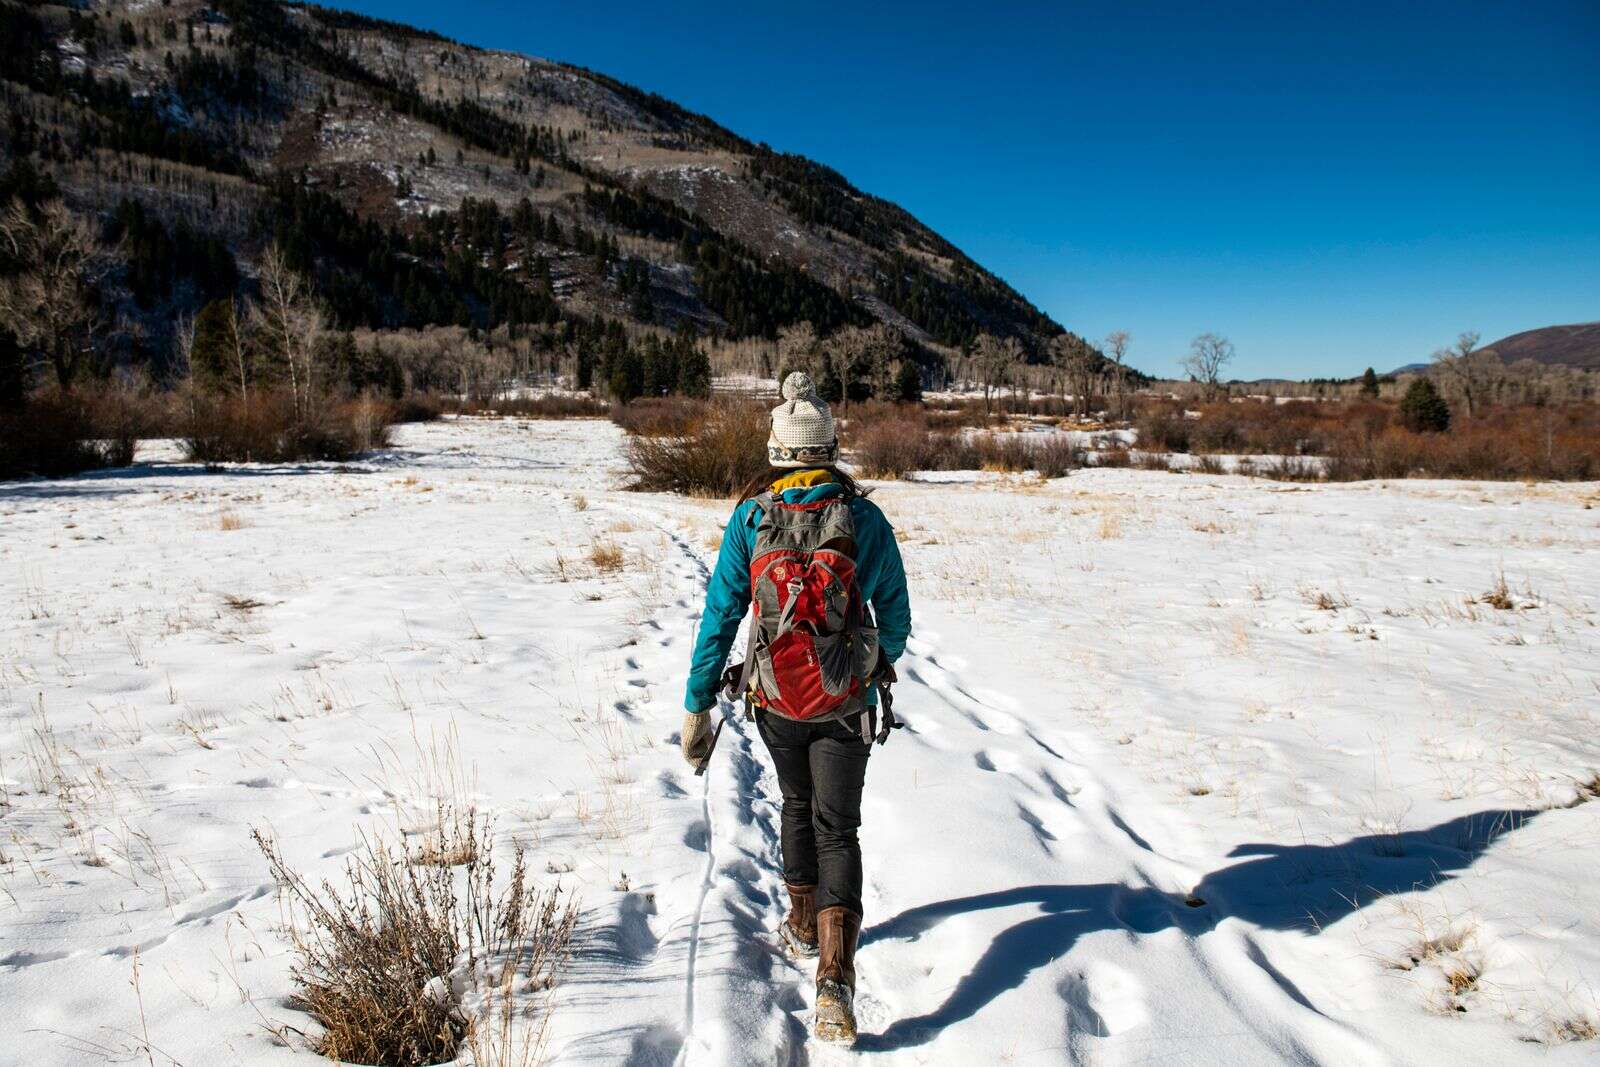 Pitkin County Open Space & Trails' Liza Mitchell walks through Northstar Nature Preserve to scout a place to put wildlife camera to monitor beaver dam activity in Aspen on Friday, Dec. 4, 2020. (Kelsey Brunner/The Aspen Times)